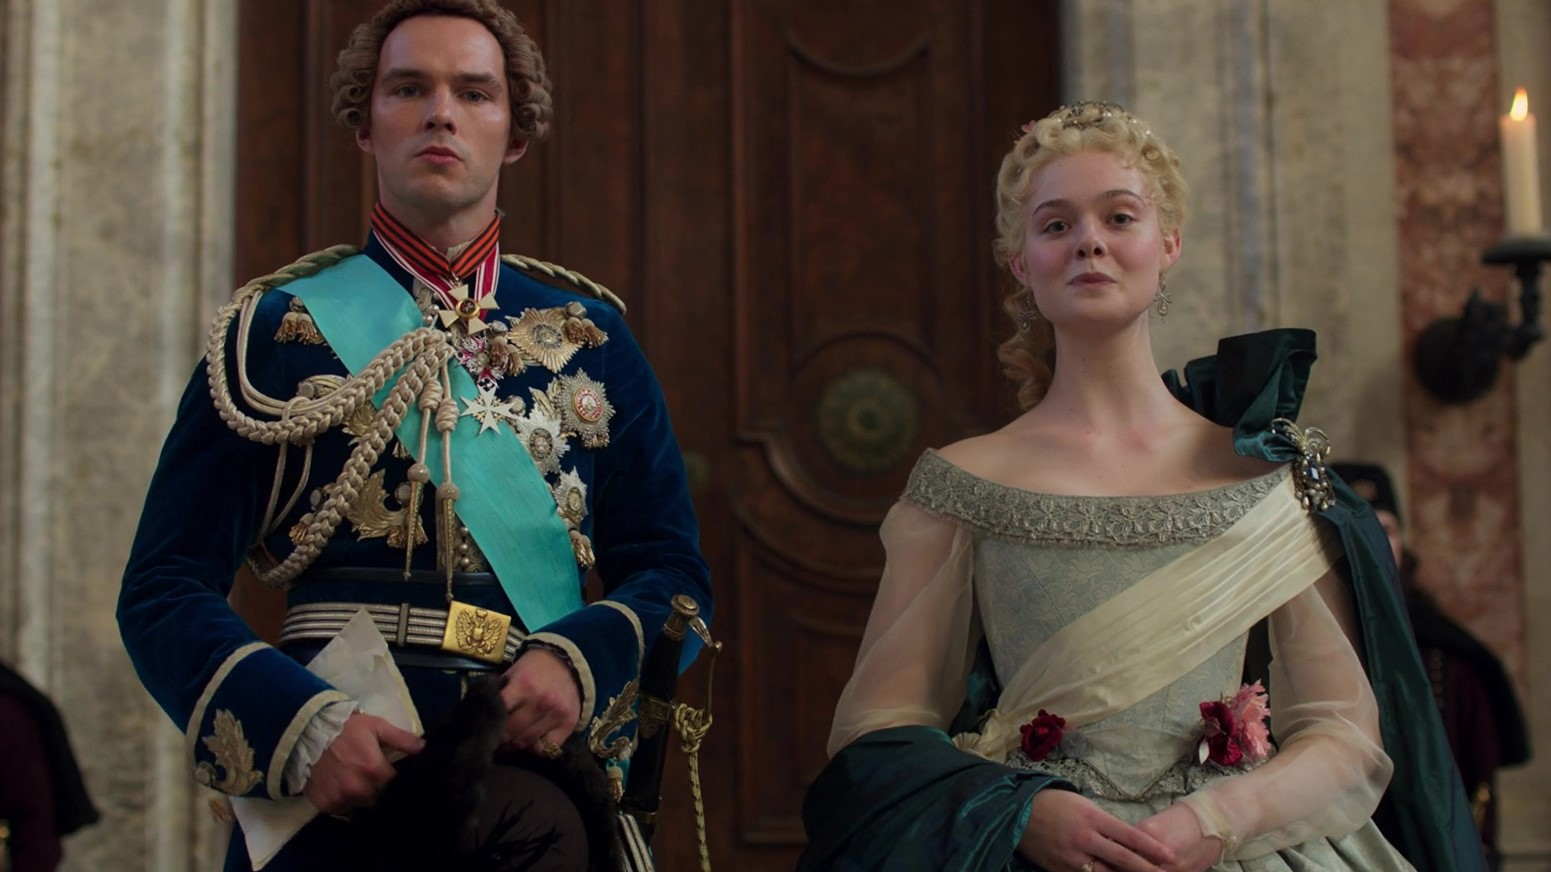 Nicholas Hoult and Elle Fanning in The Great (2020). Peter (left) and Catherine (right) and standing together in their royal attire, he in a navy velvet jacket adorned with gold medals and a blue sash, she in a more muted pale green dress with a cream sash and a forest green cloak over one shoulder. Both look into the camera, poised.